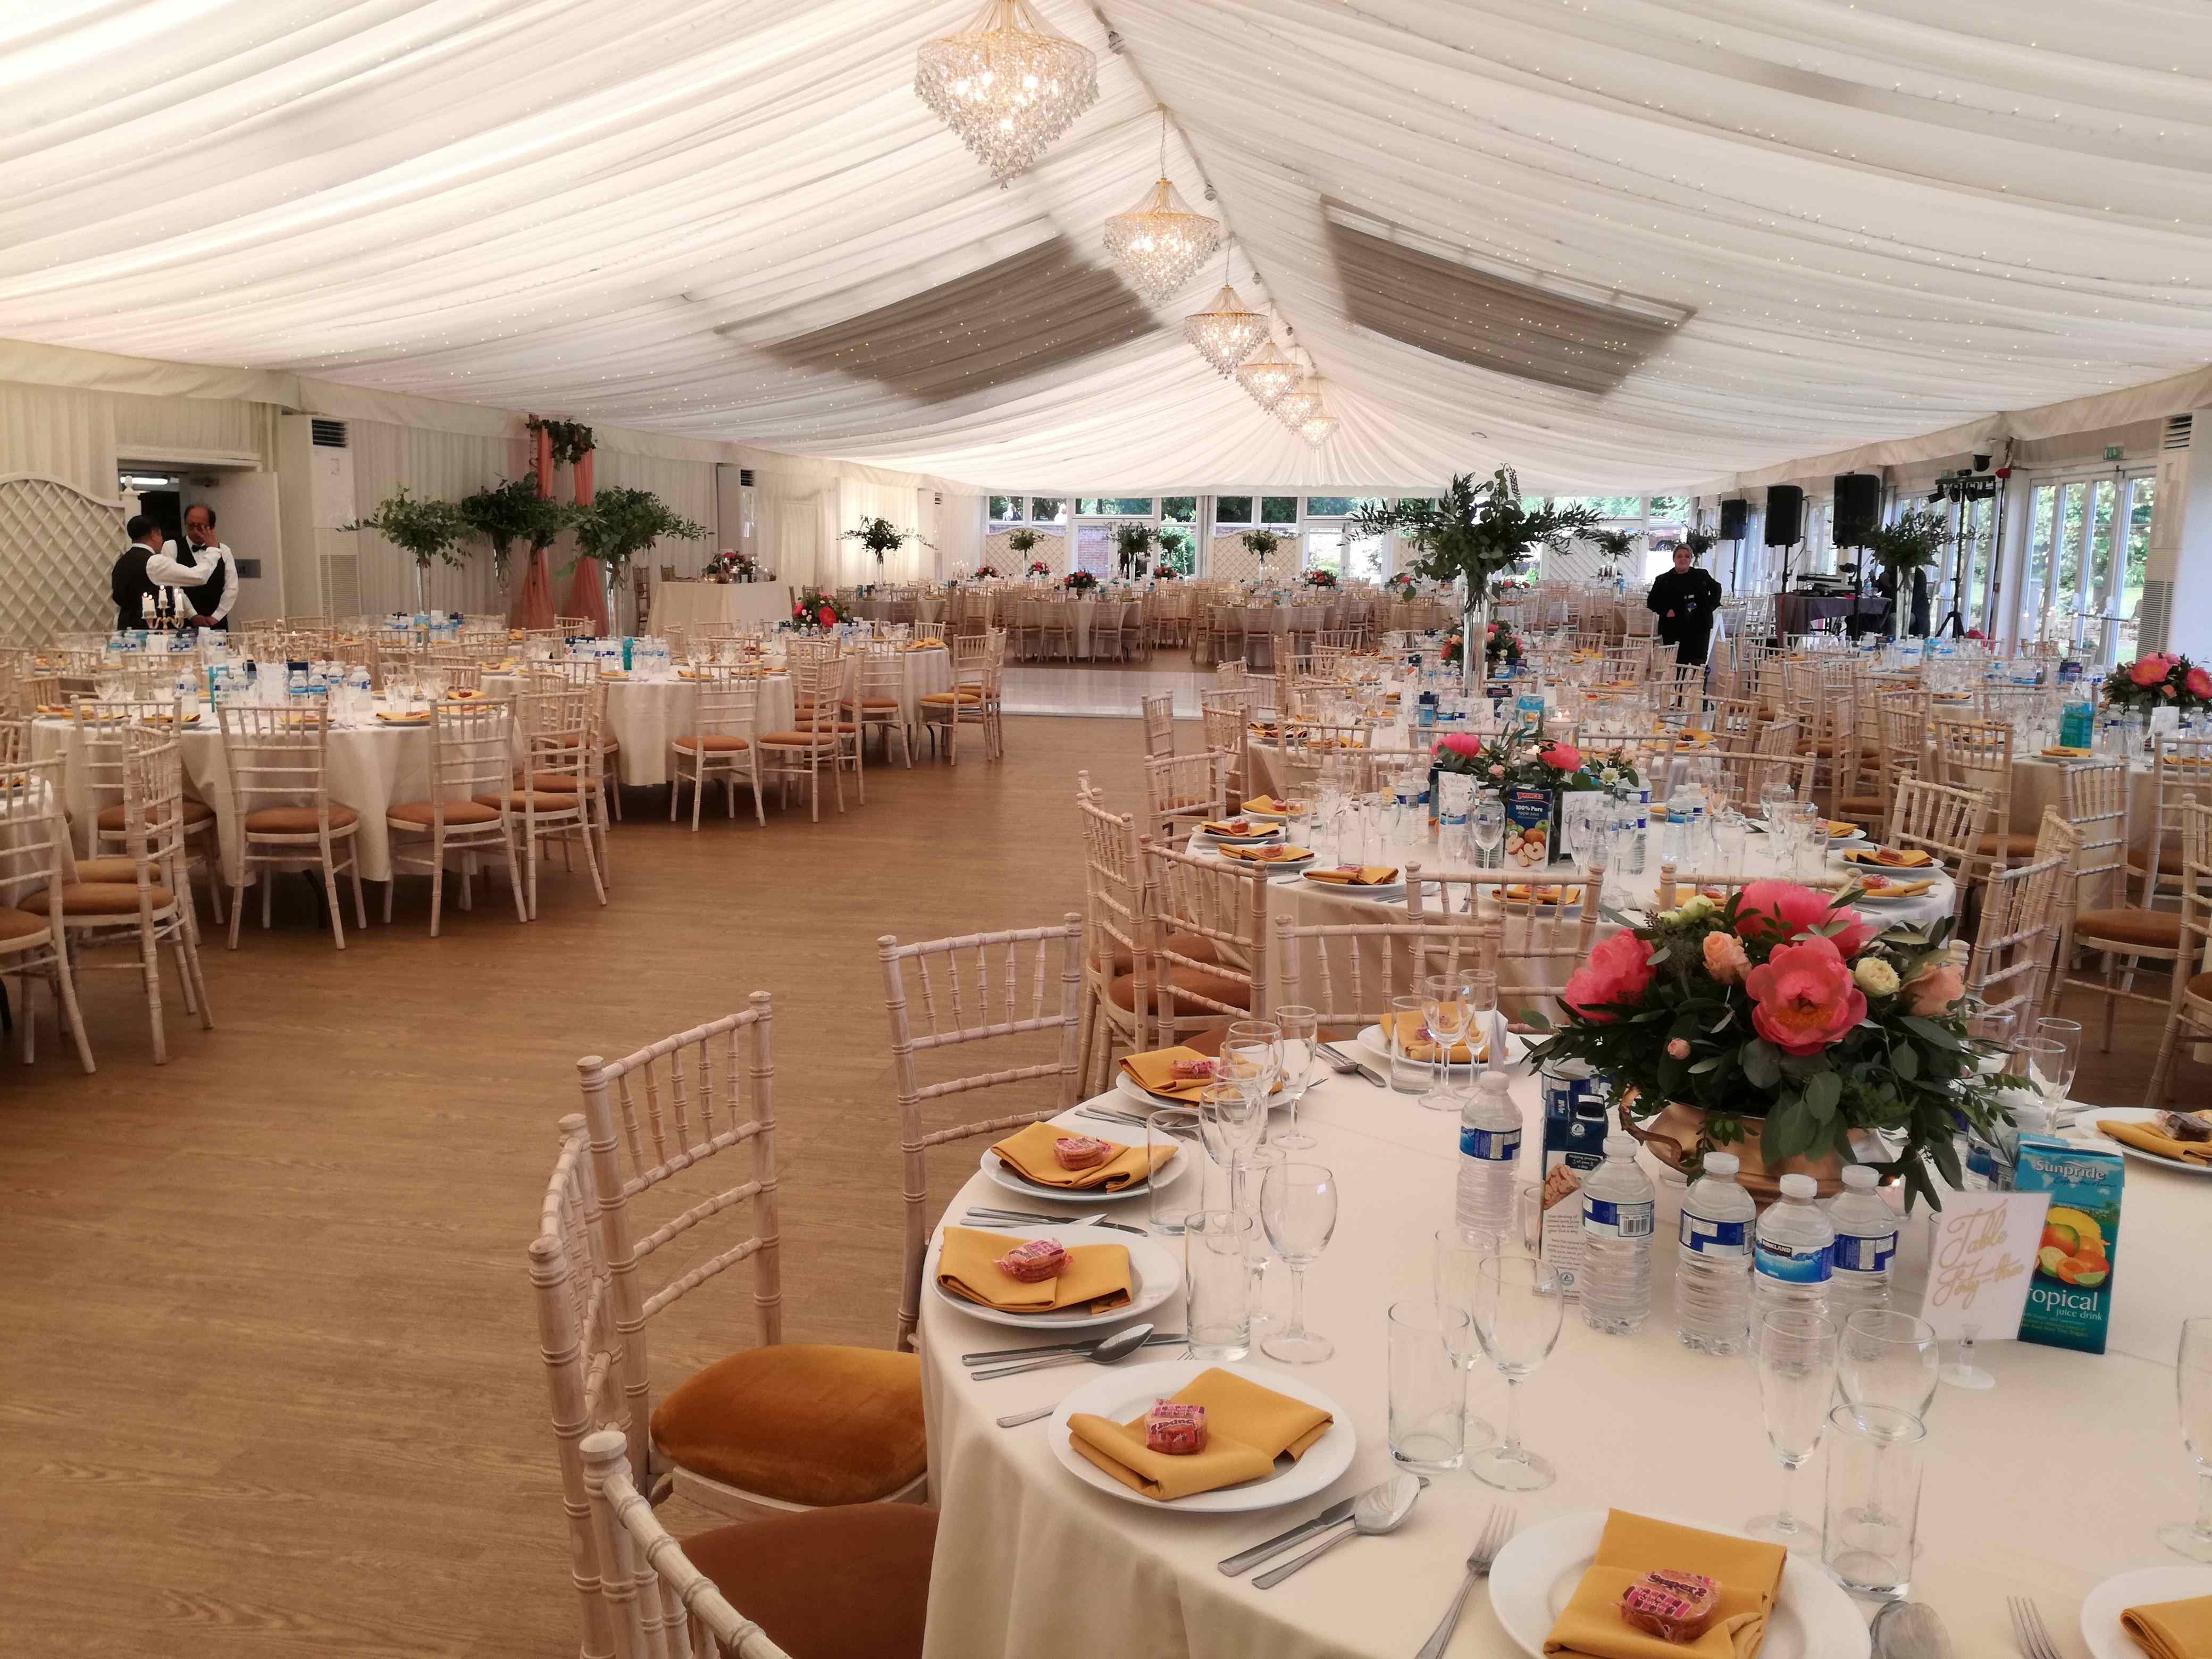 Les Eventas Summer Sale offering 'On the Day Afro Caribbean Wedding Coordination' service